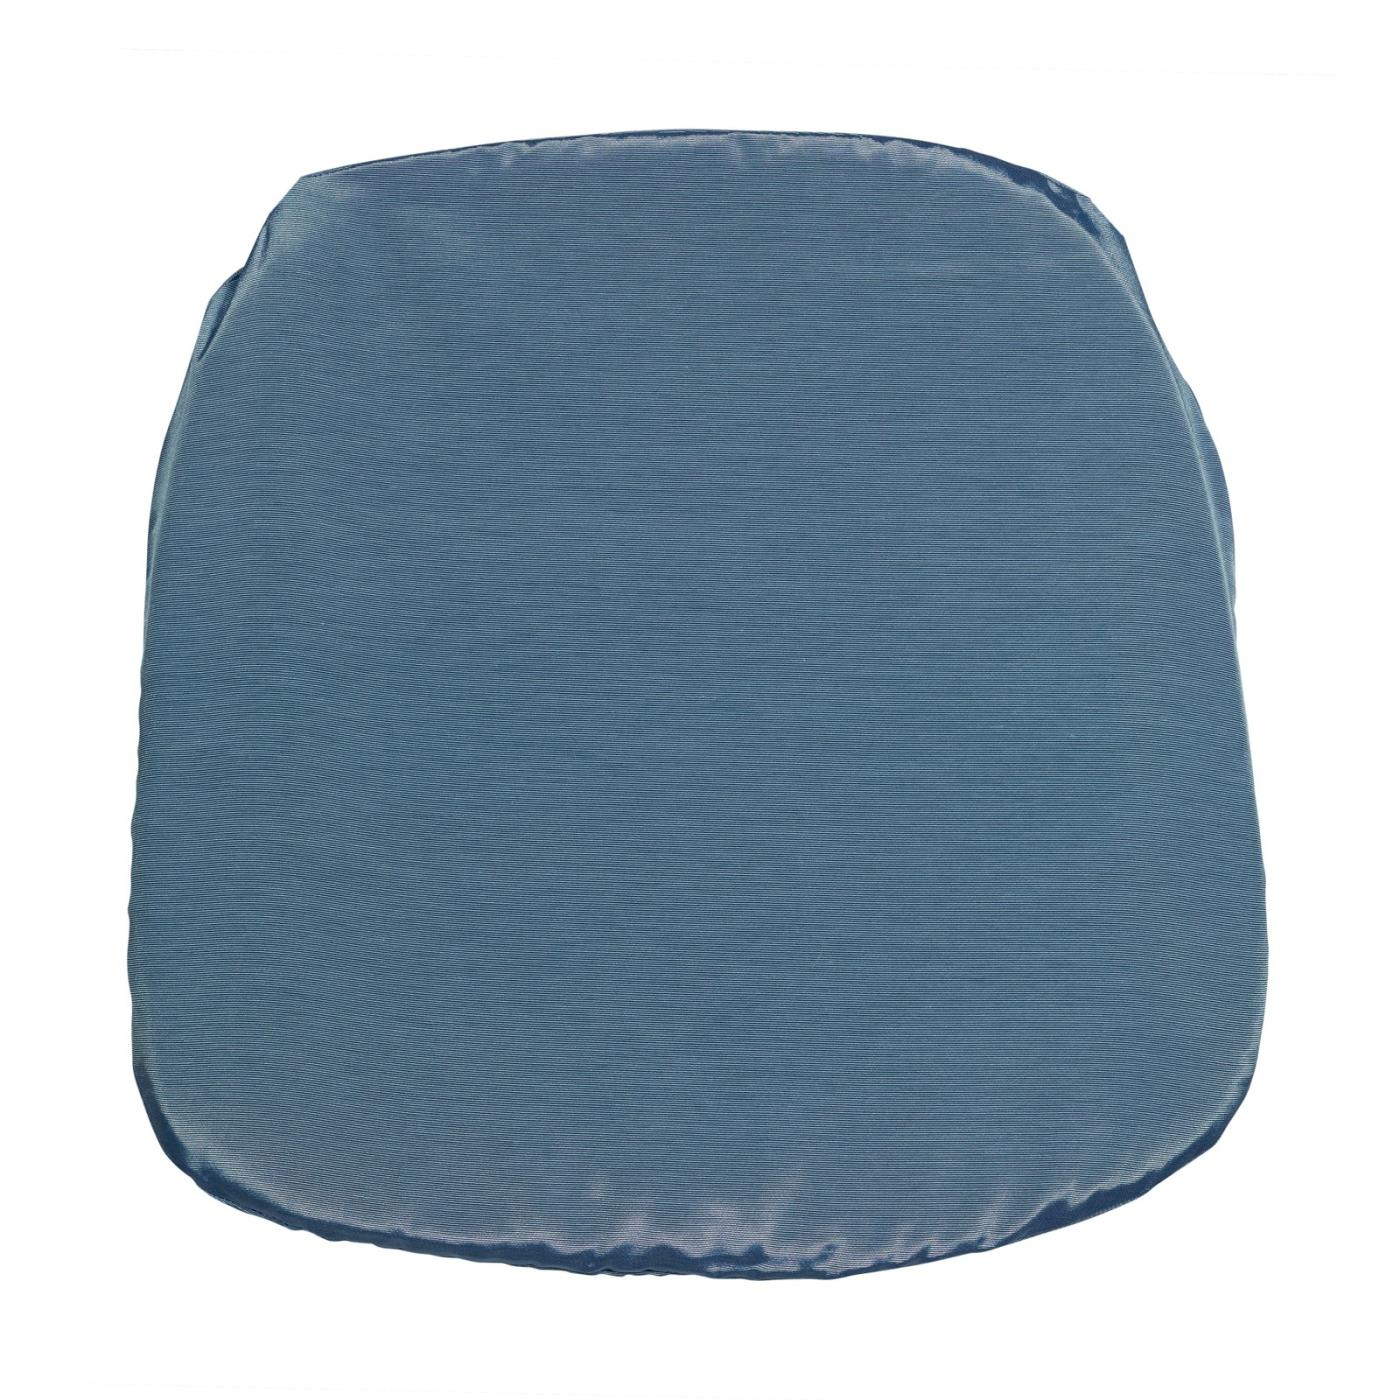 Bengaline Seat Cushion - Ocean Blue